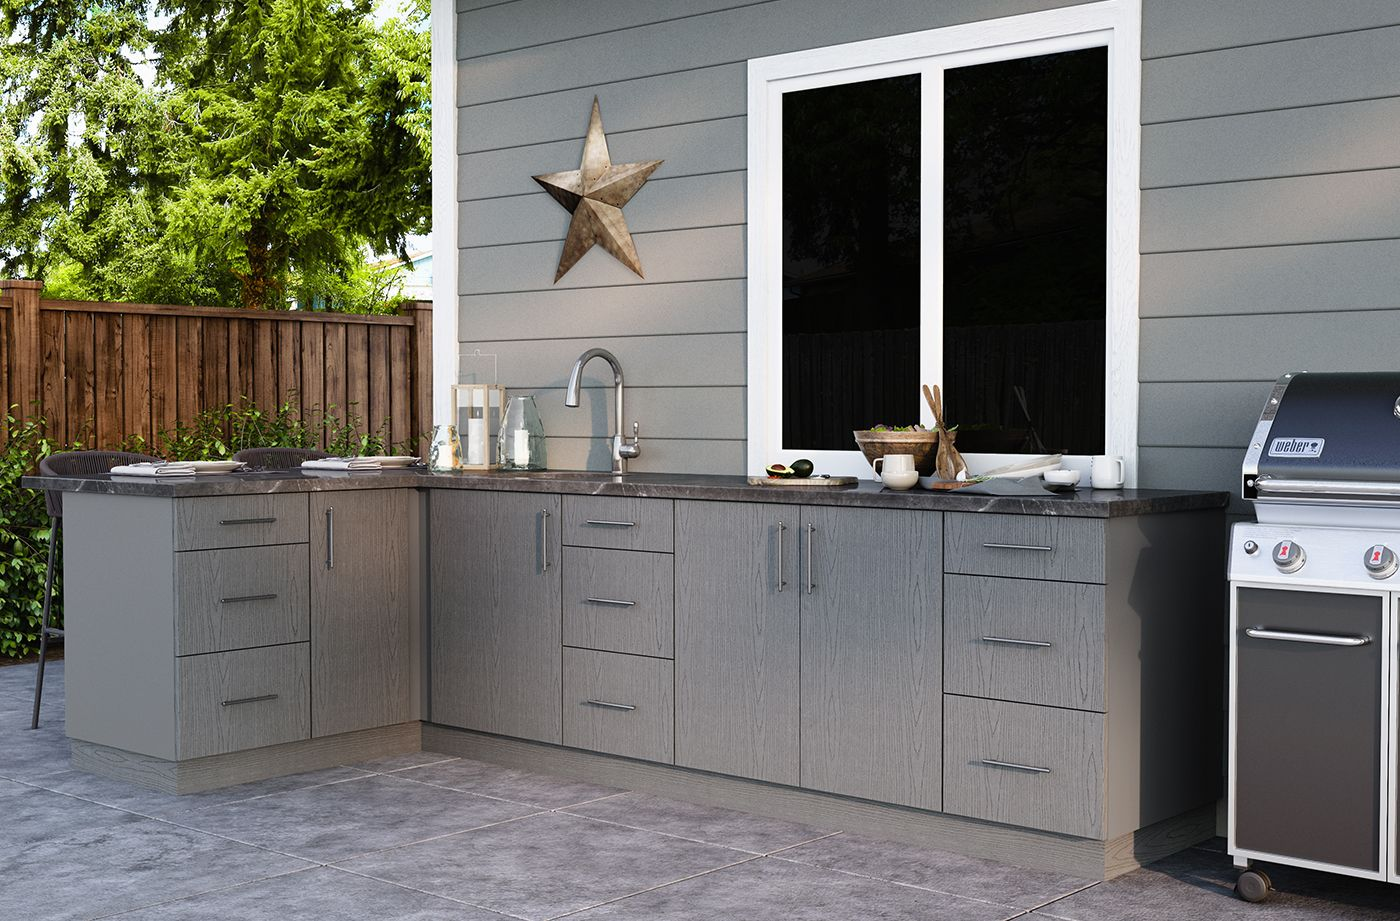 Costco Weatherstrong Outdoor Cabinetry In 2020 Outdoor Kitchen Cabinetry Kitchen